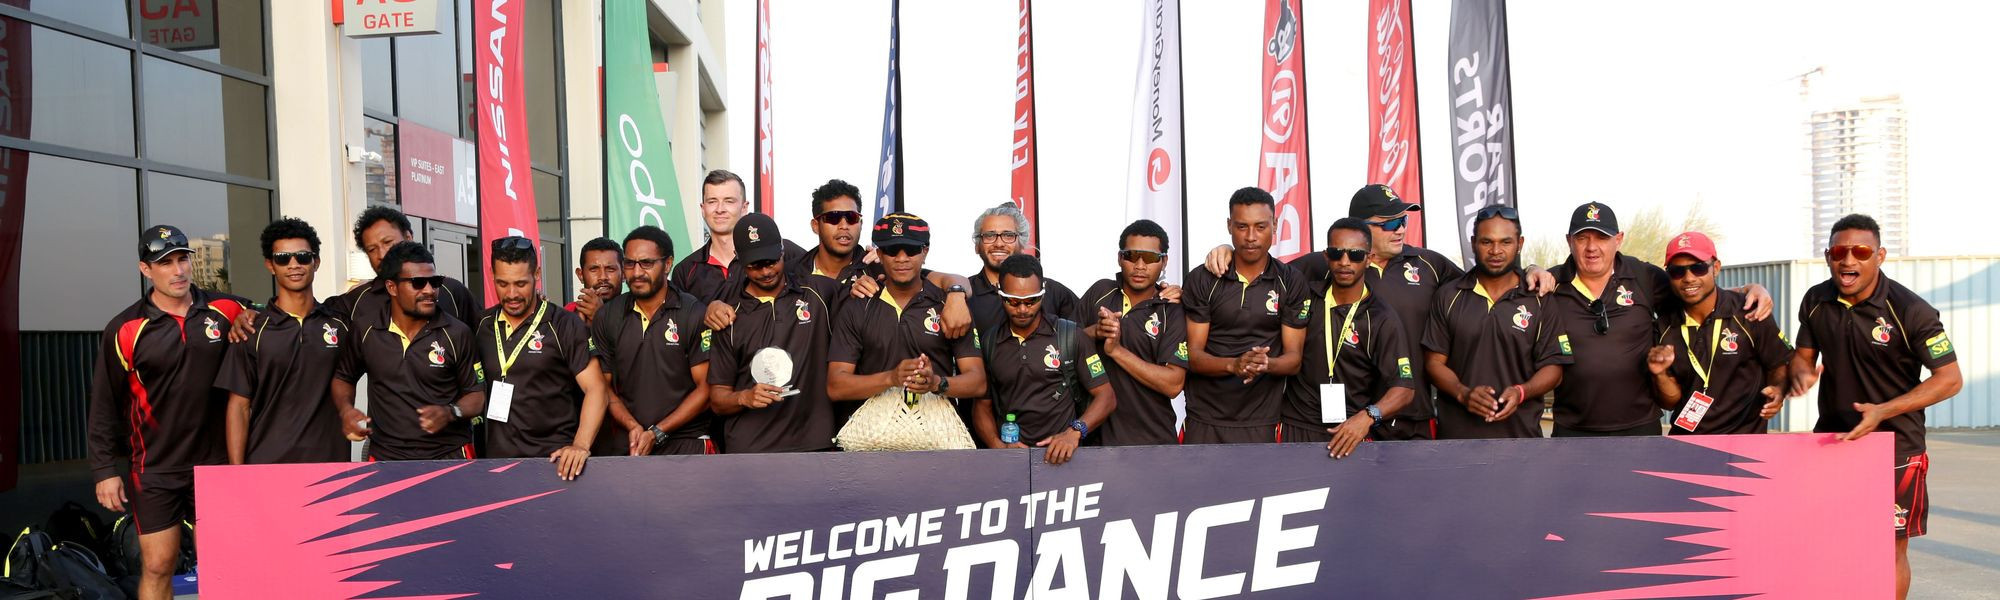 Papua New Guinea and Ireland qualify for ICC T20 World Cup